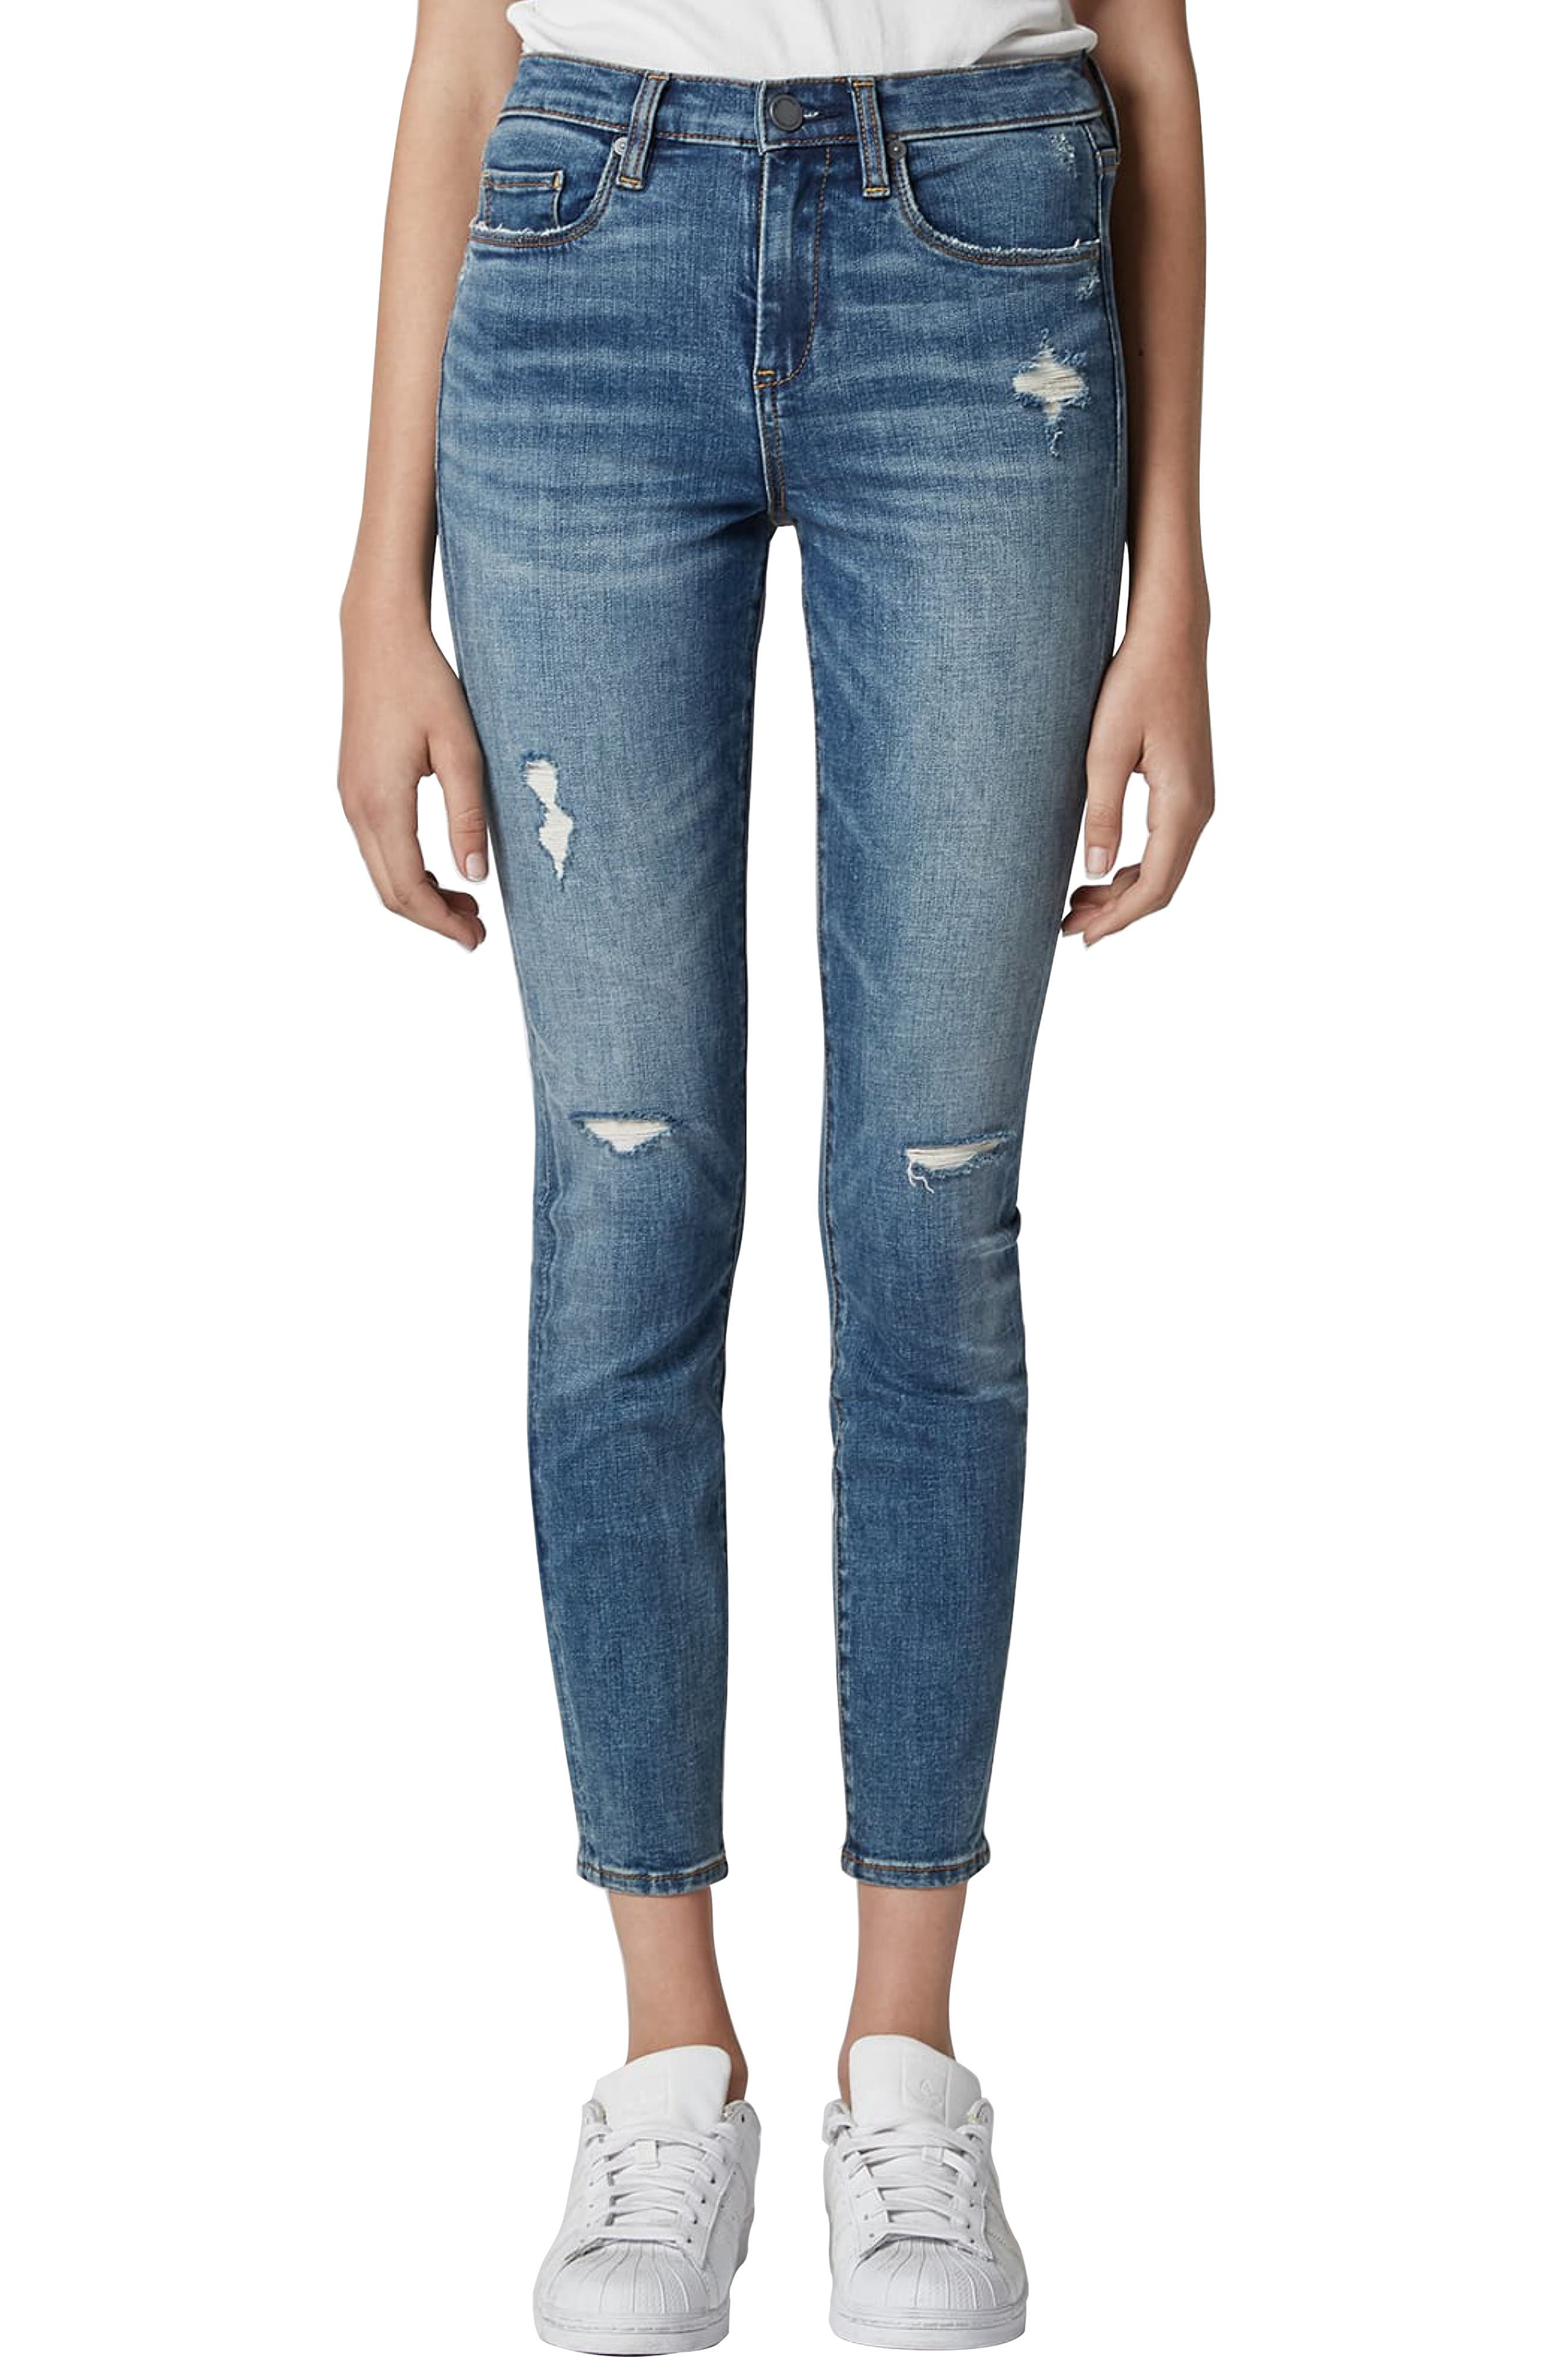 BLANKNYC, The Bond Ripped Skinny Jeans, Main thumbnail 1, color, JERSEY GIRLS